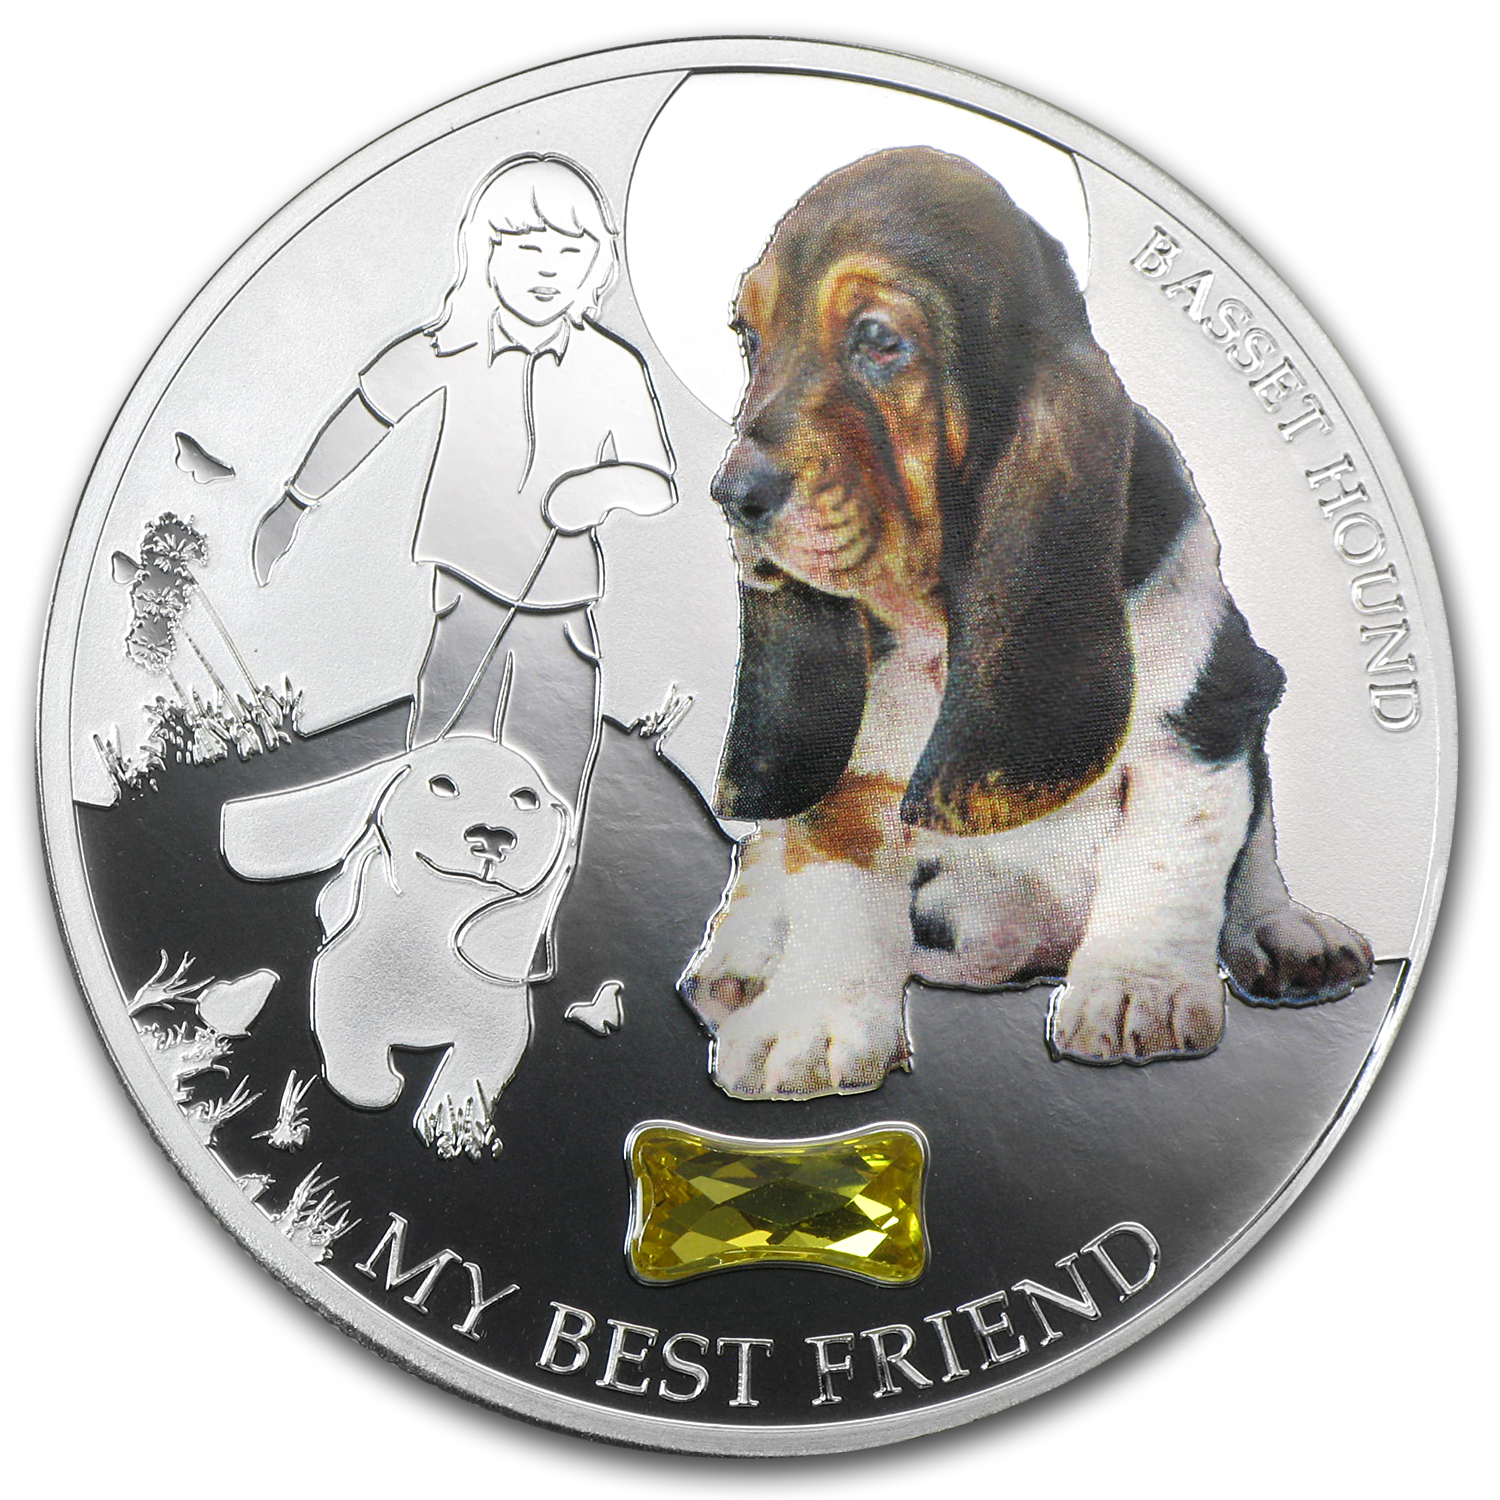 2013 Fiji Silver Dogs & Cats Series My Best Friend Basset Hound